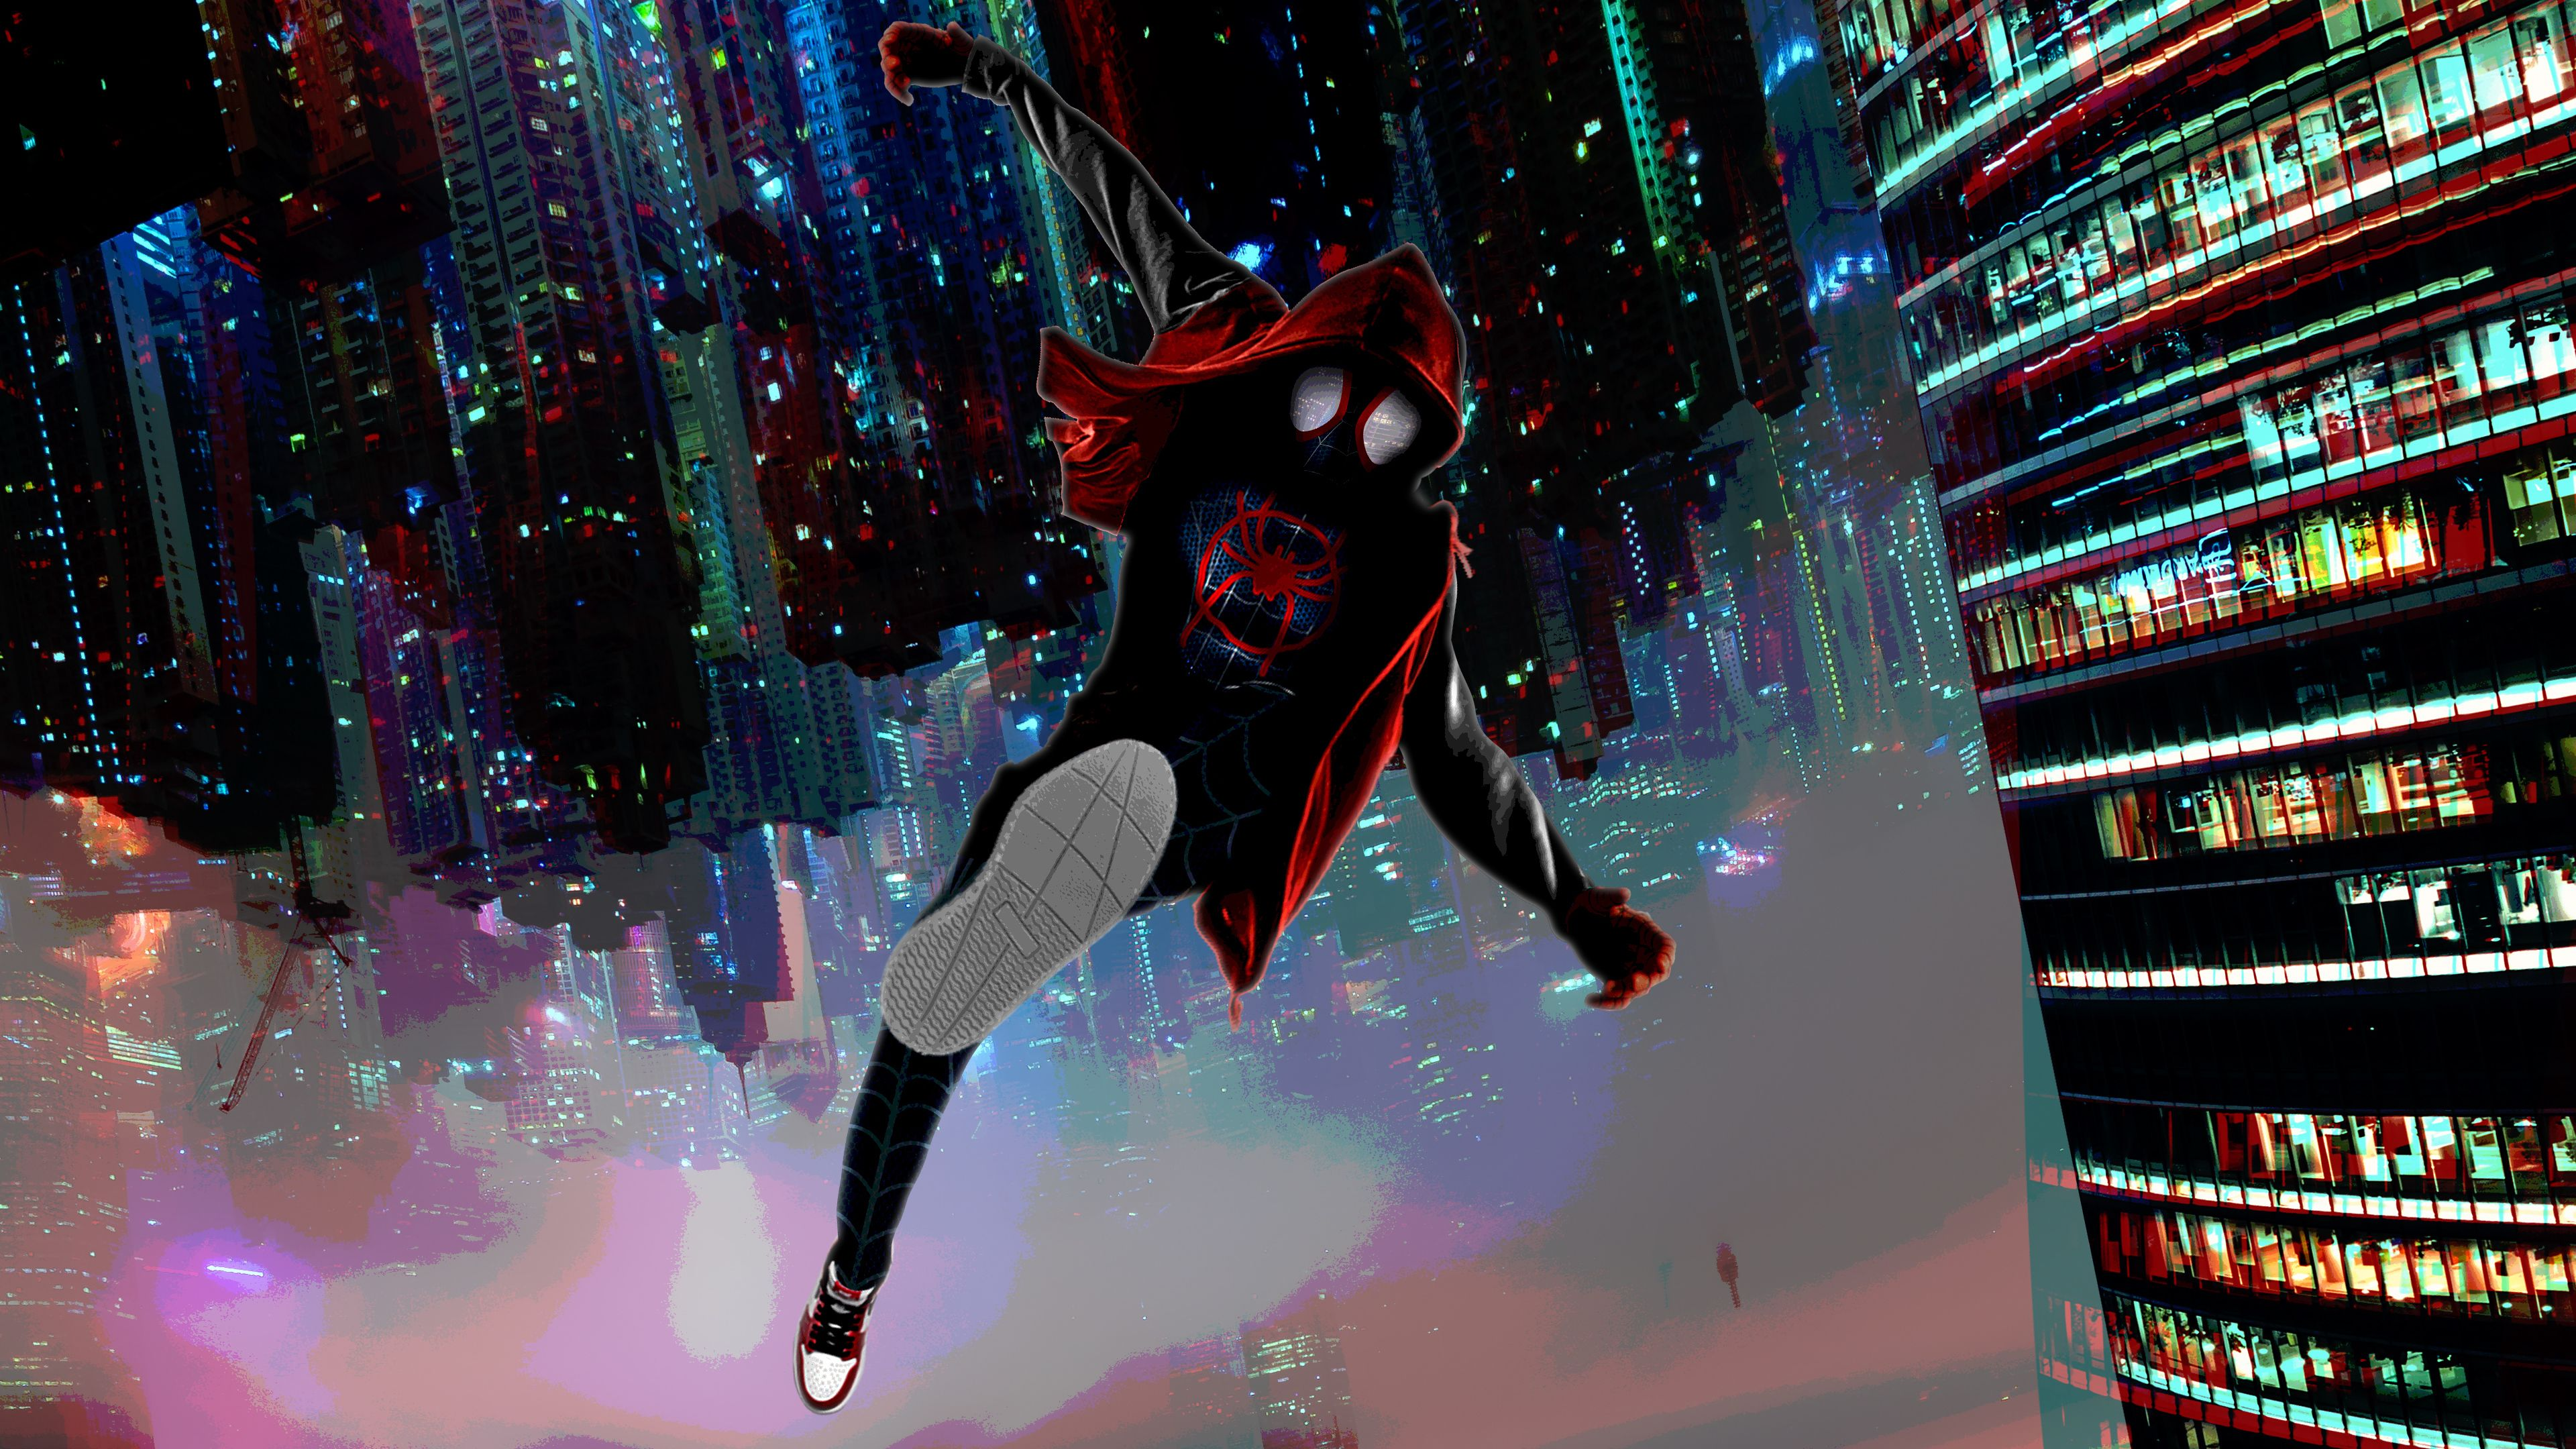 Wallpaper 4k Spiderman Miles Morales Arts 4k 4k Wallpapers Artist